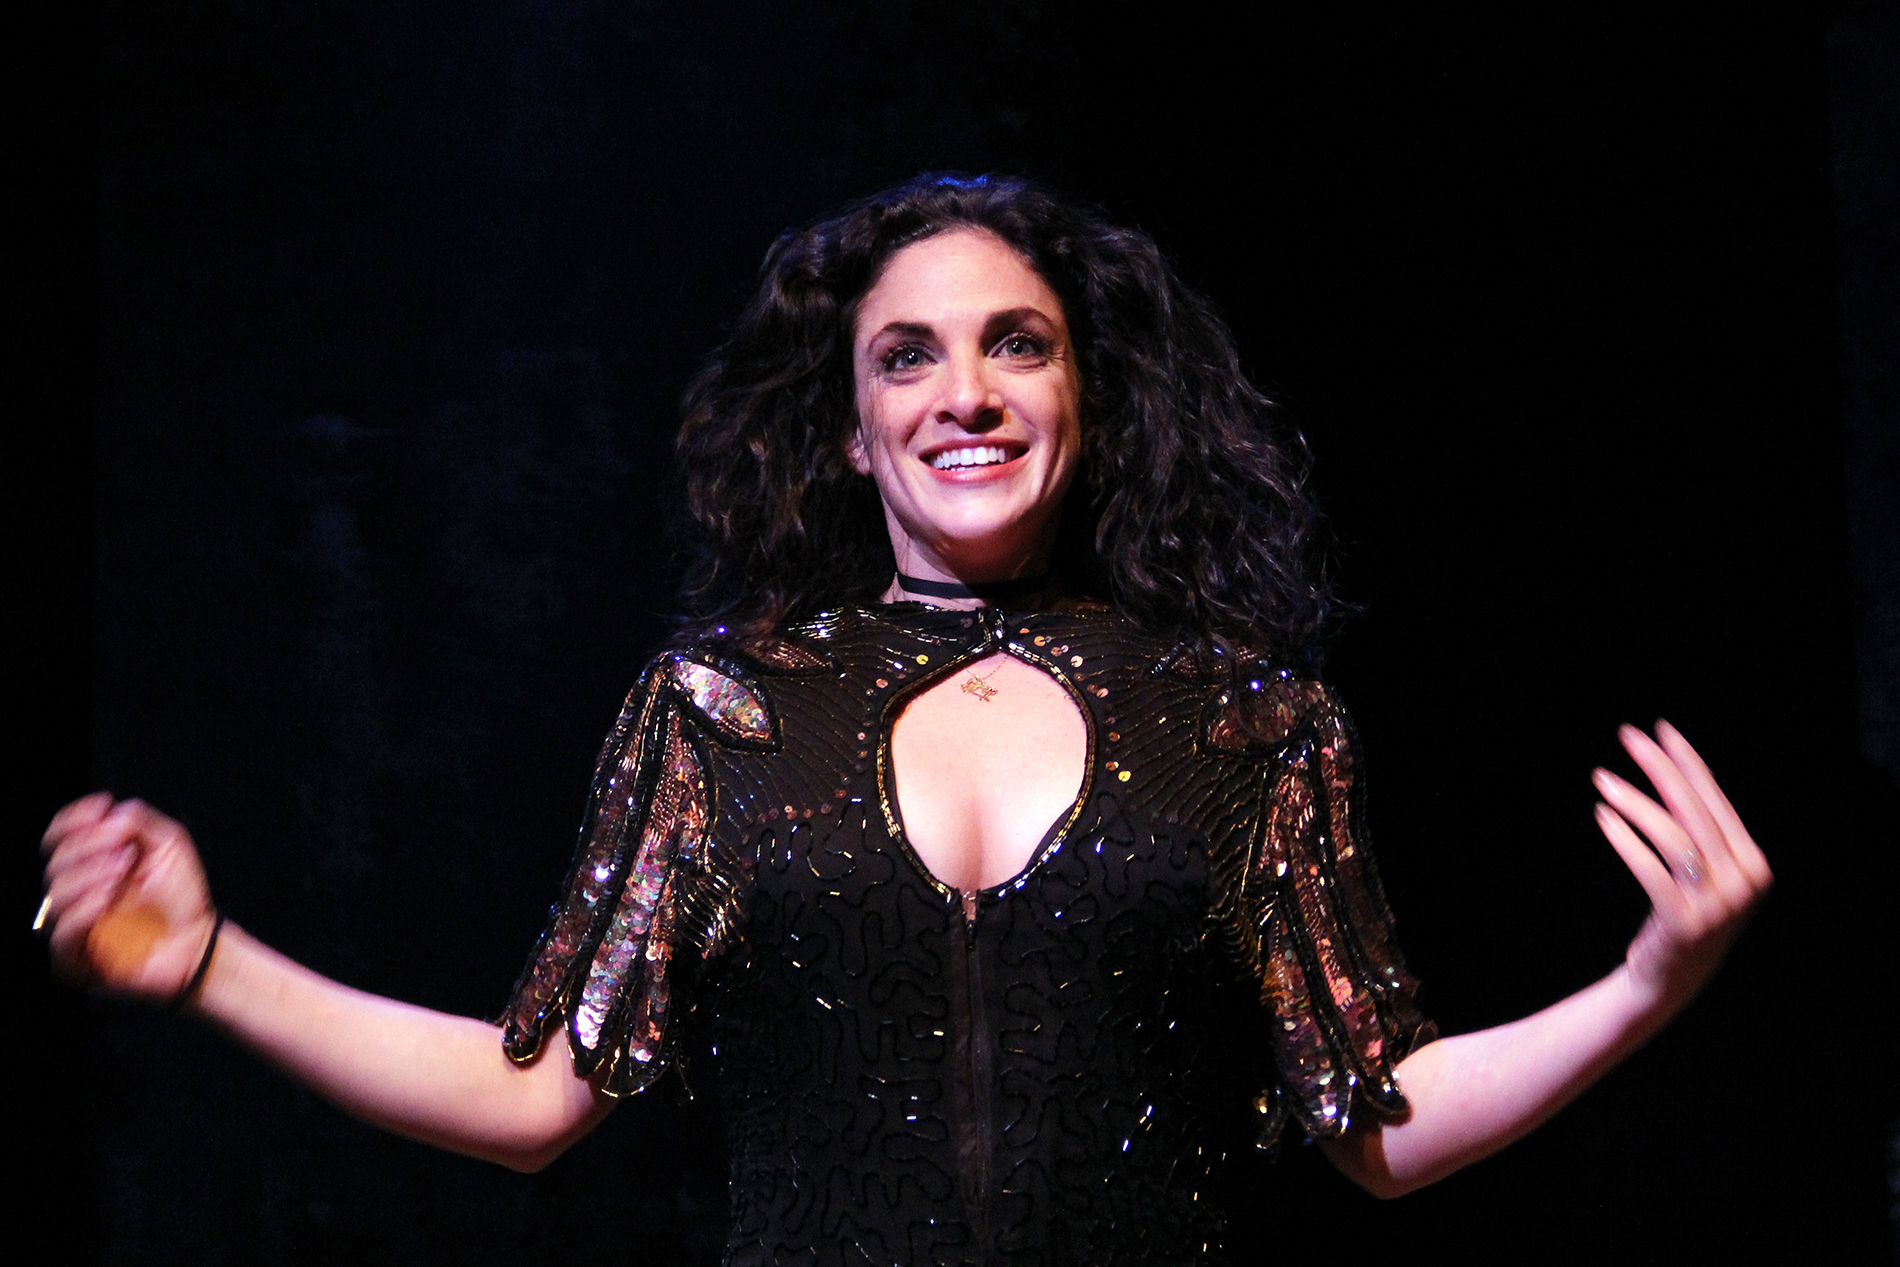 a performer wearing all black